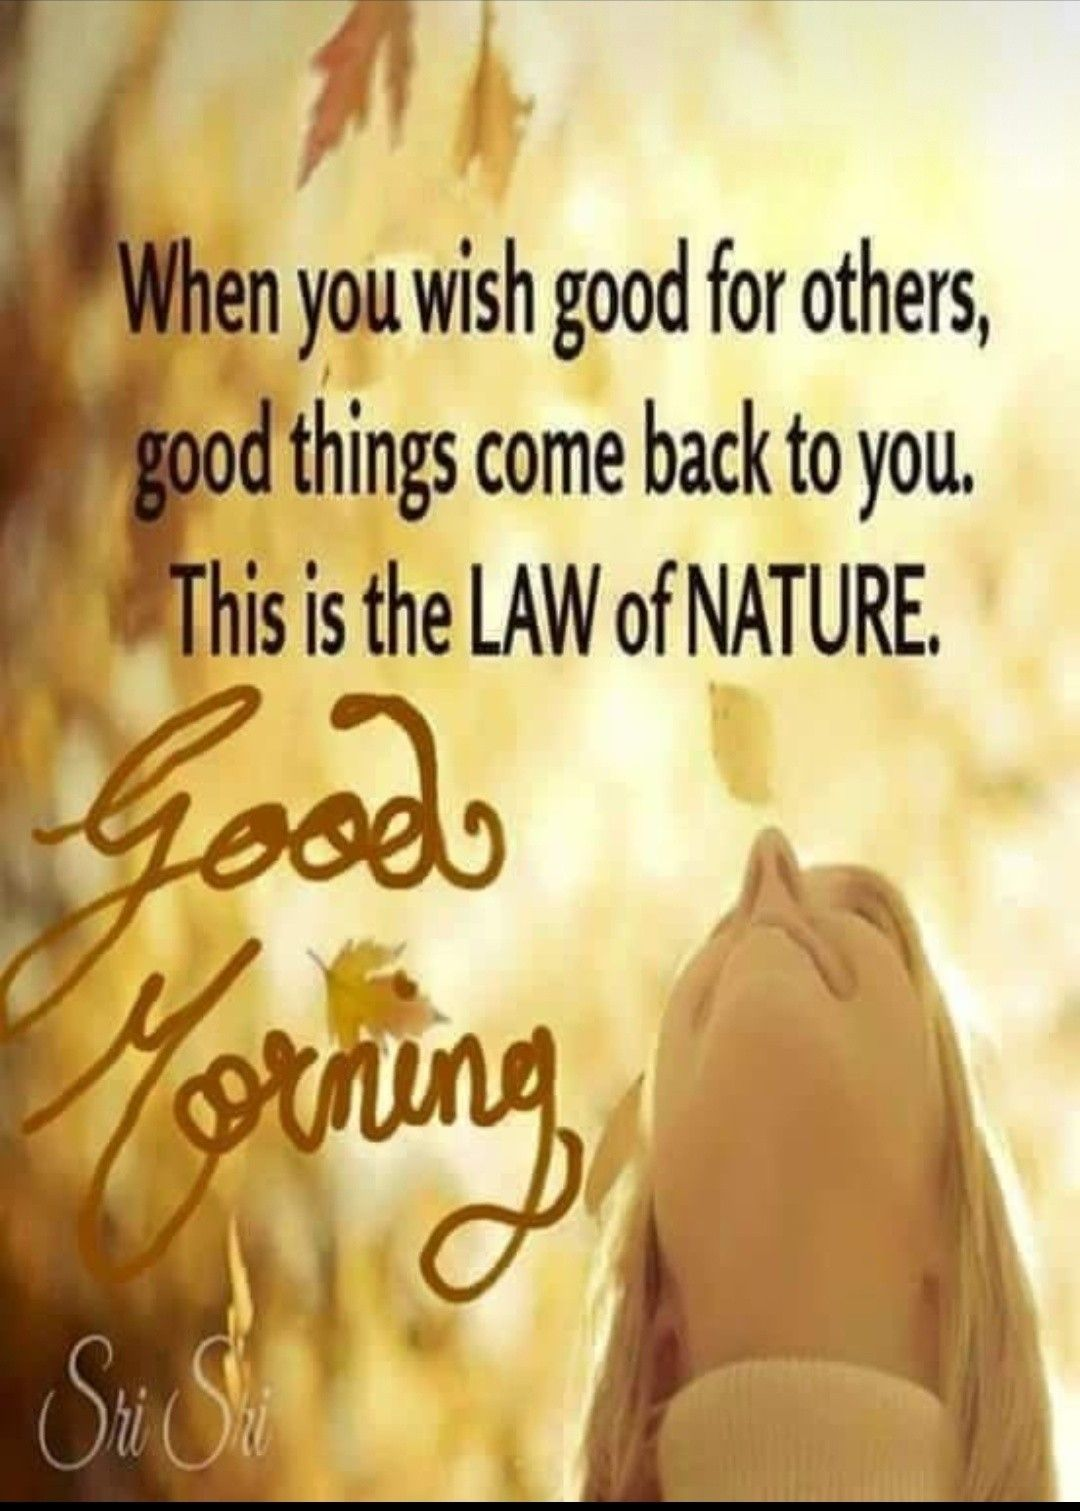 Positive Morning Quotes Simple Pinprasuna Kamle On Good Mrng  Pinterest  Spiritual Messages